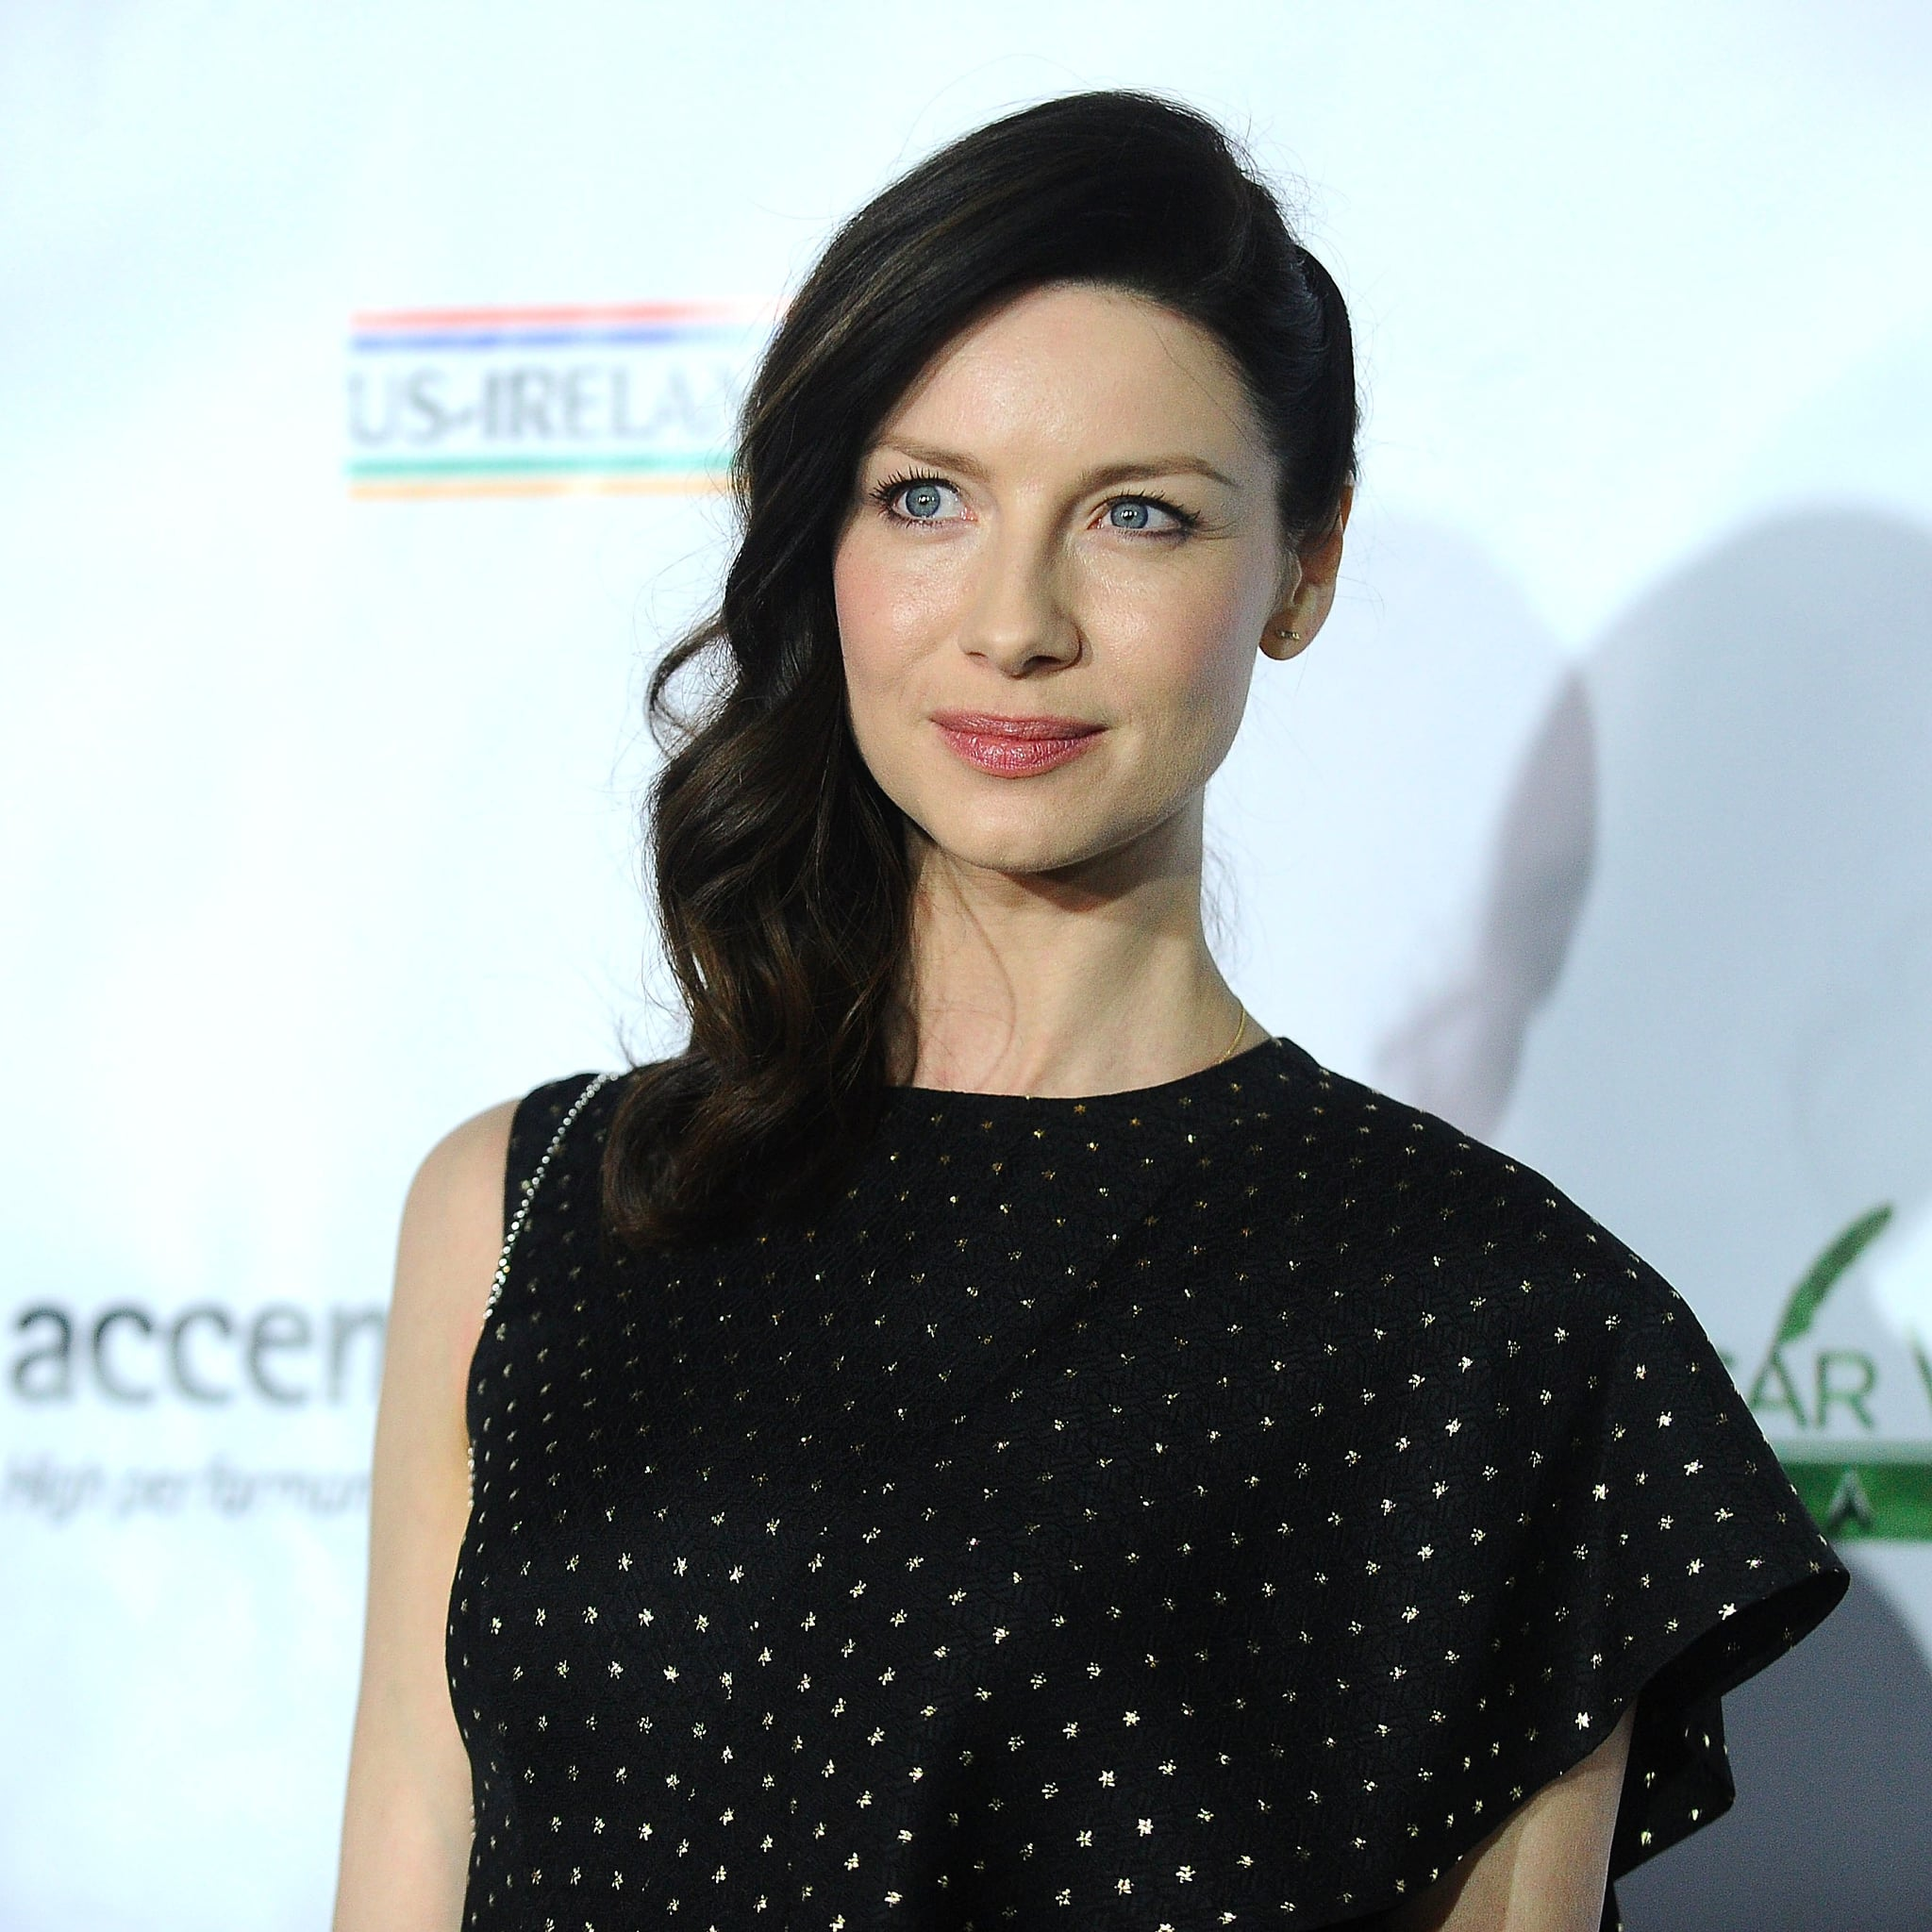 Balfe wearing a black dress and posing for a picture